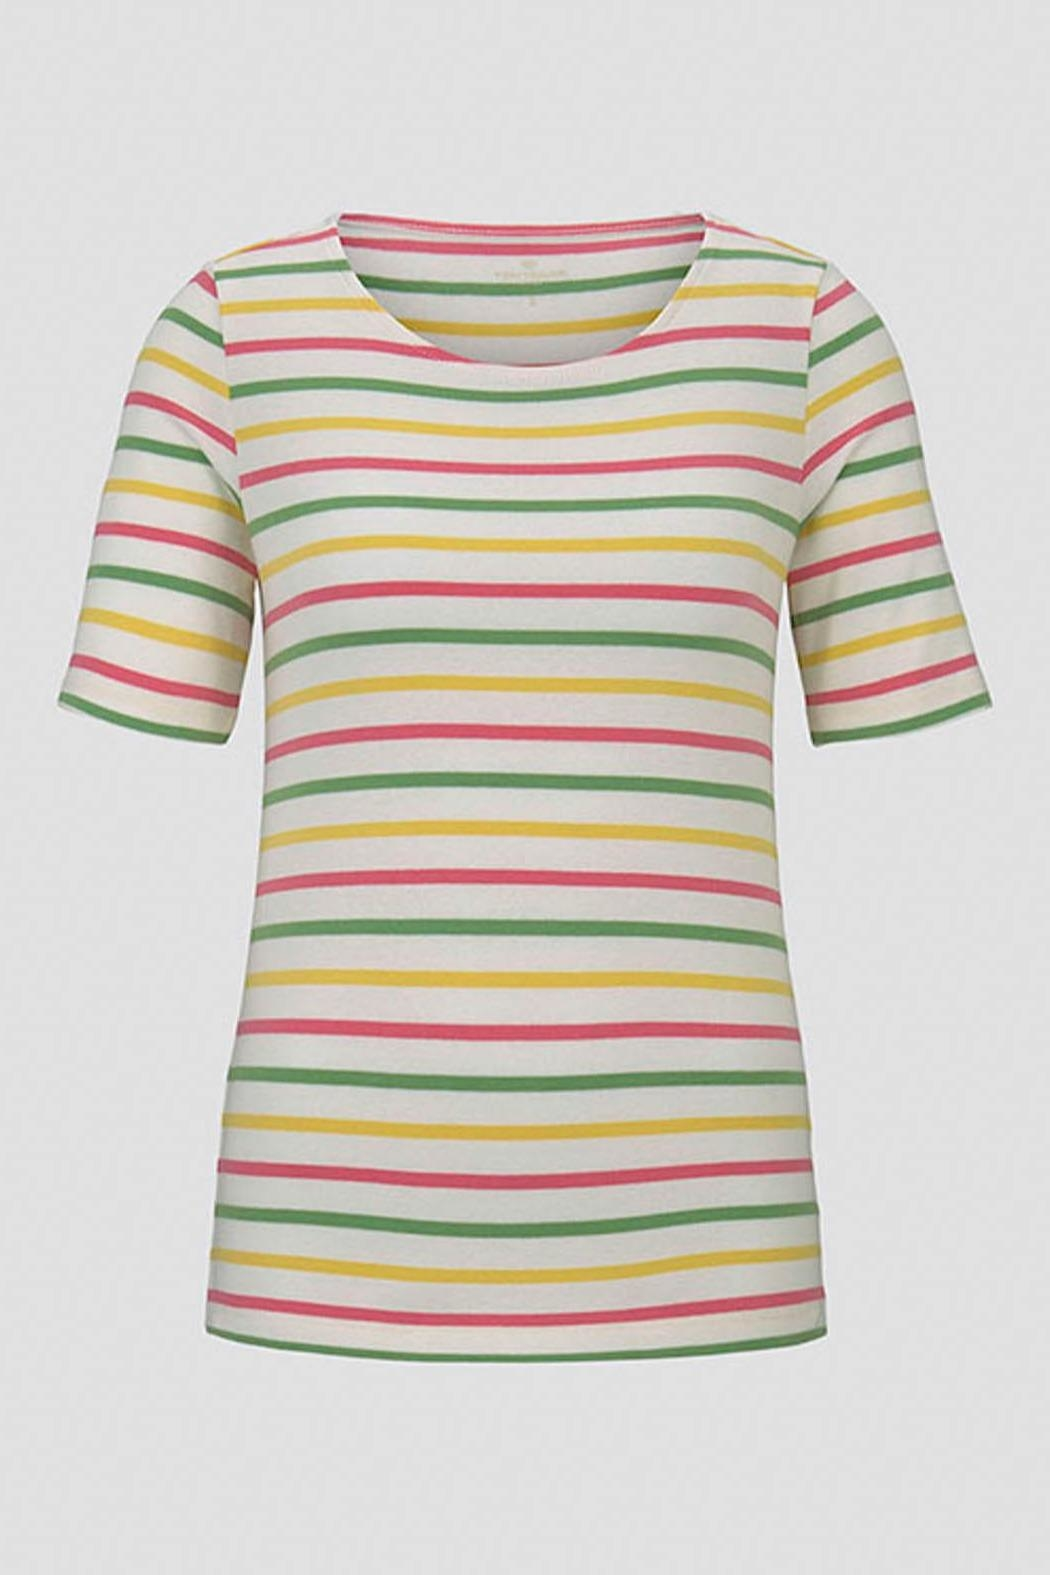 Tom Tailor Colorful T-Shirt With Stripes - Side Cropped Image